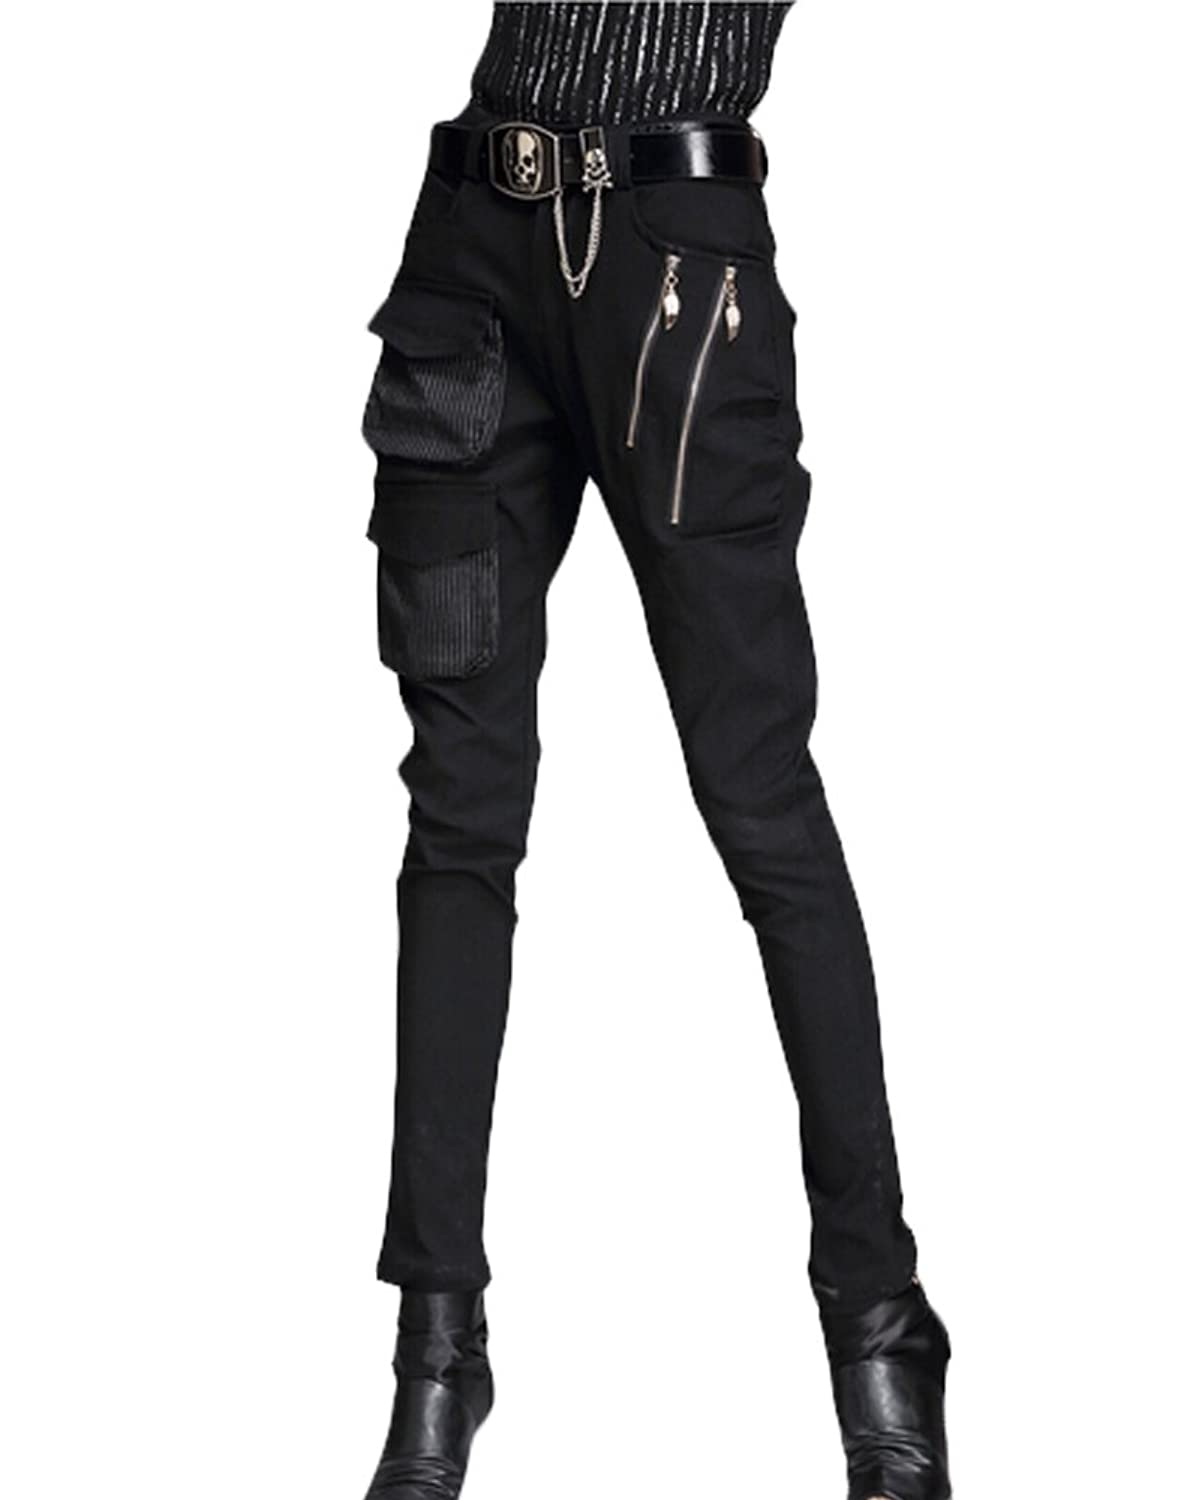 Minibee Pernalized Punk Street Style Harem Pants Patchwork Zipper Pockets